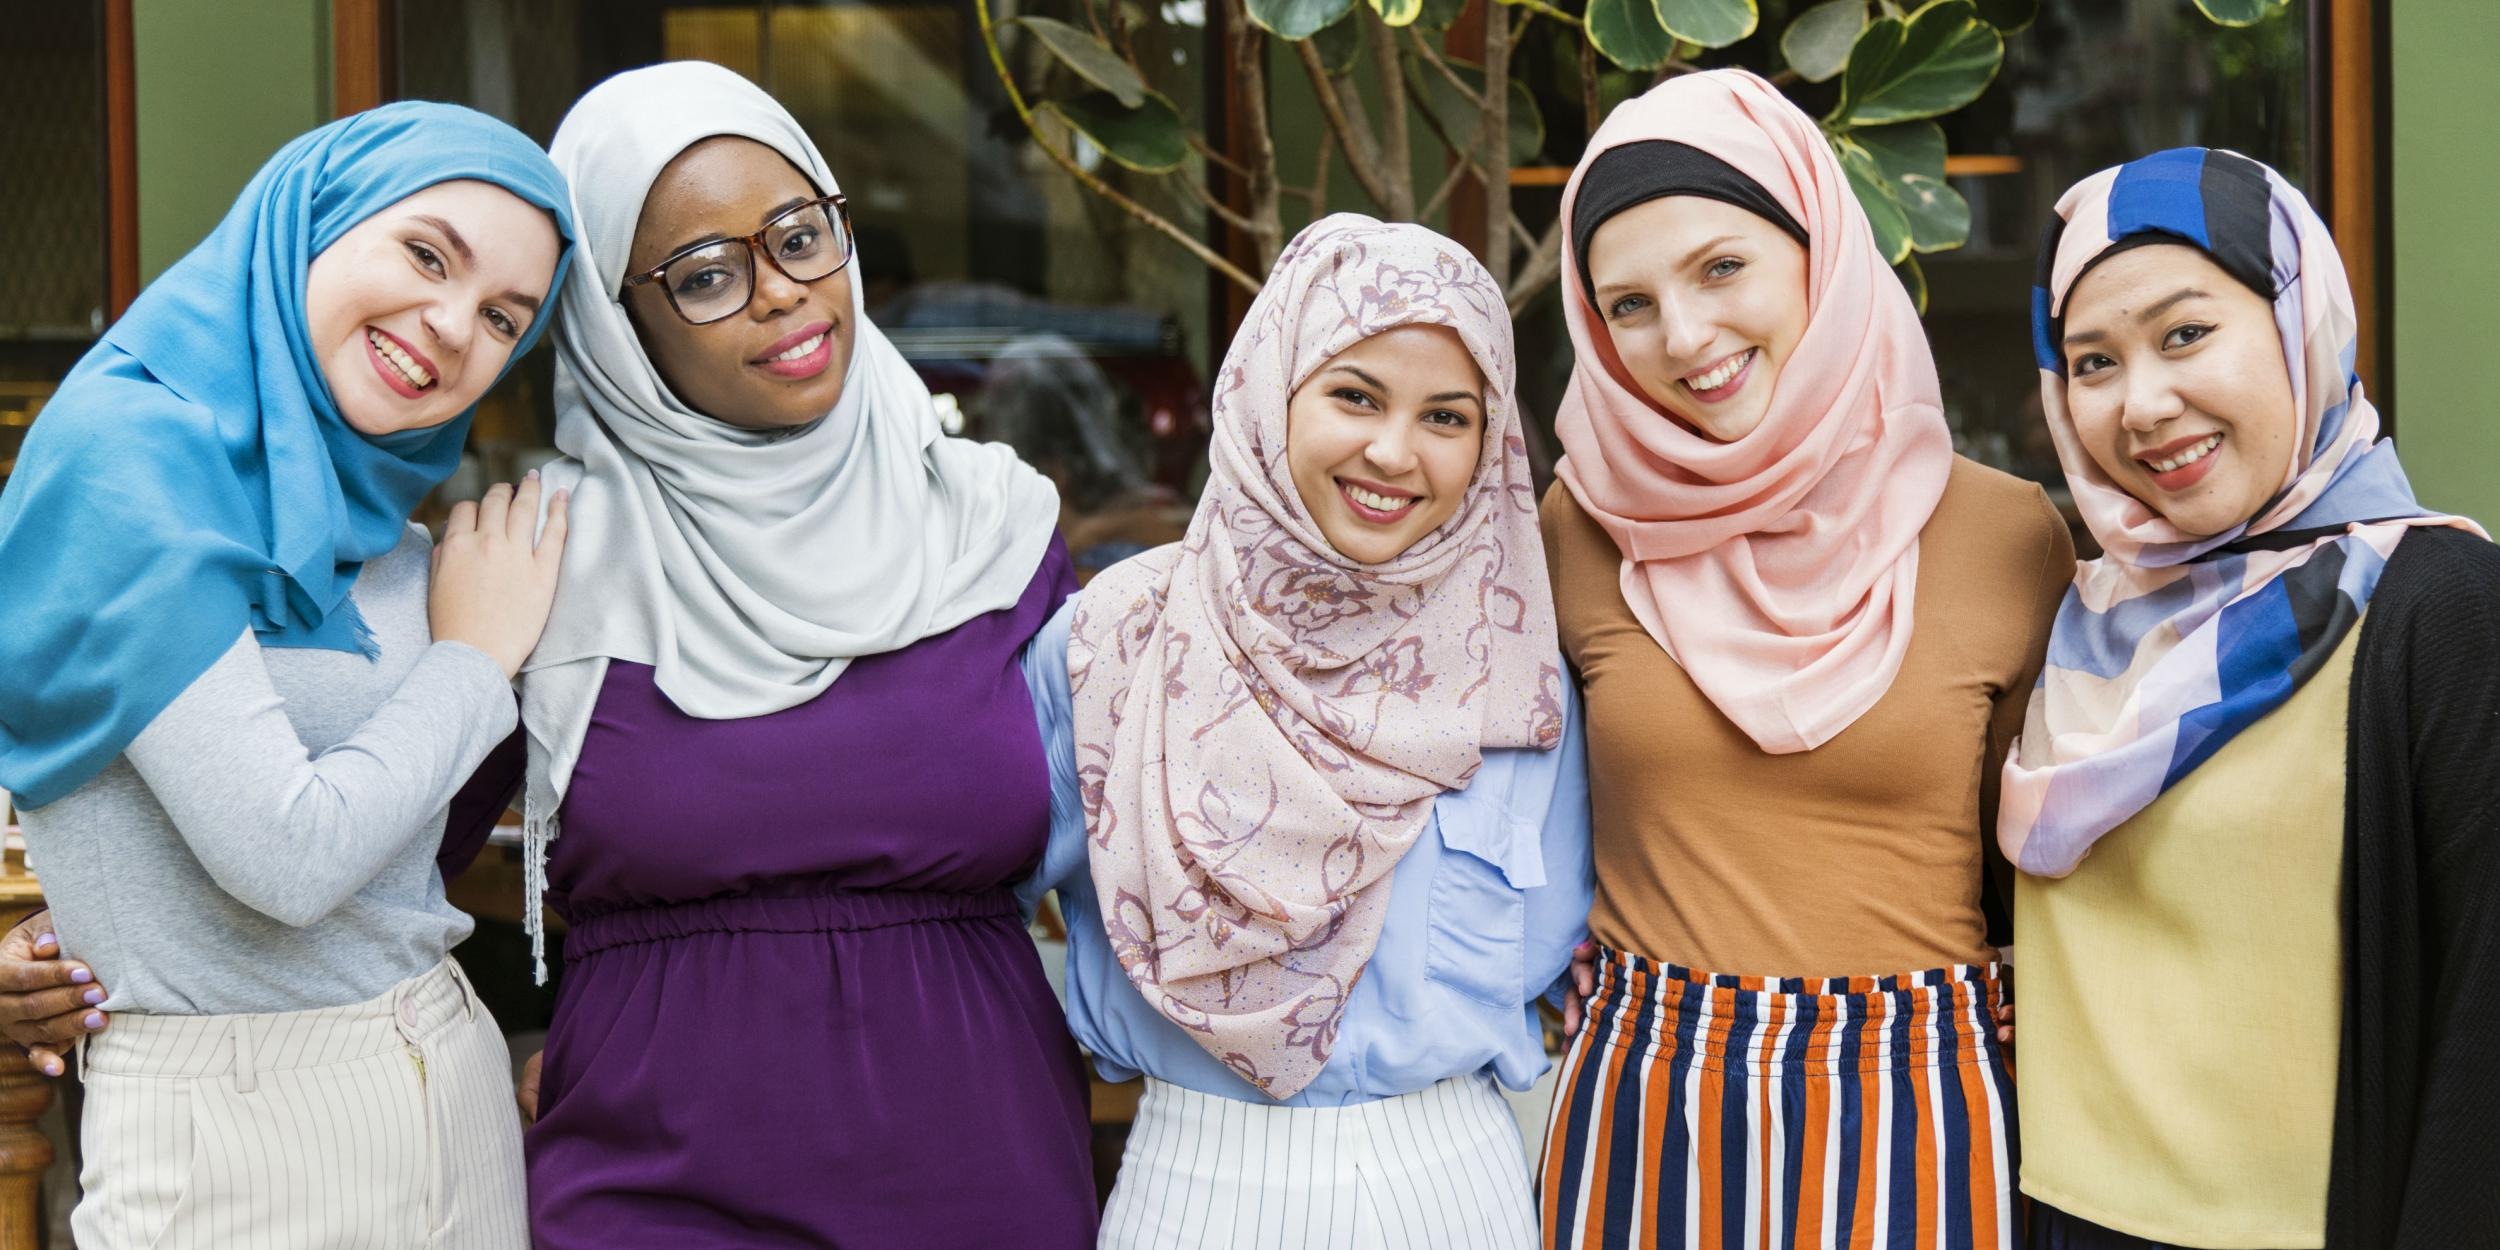 varina single muslim girls Welcome to the city of lumberton's official website this website has been developed for you, our citizens, businesses, and visitors as you browse the site you will.